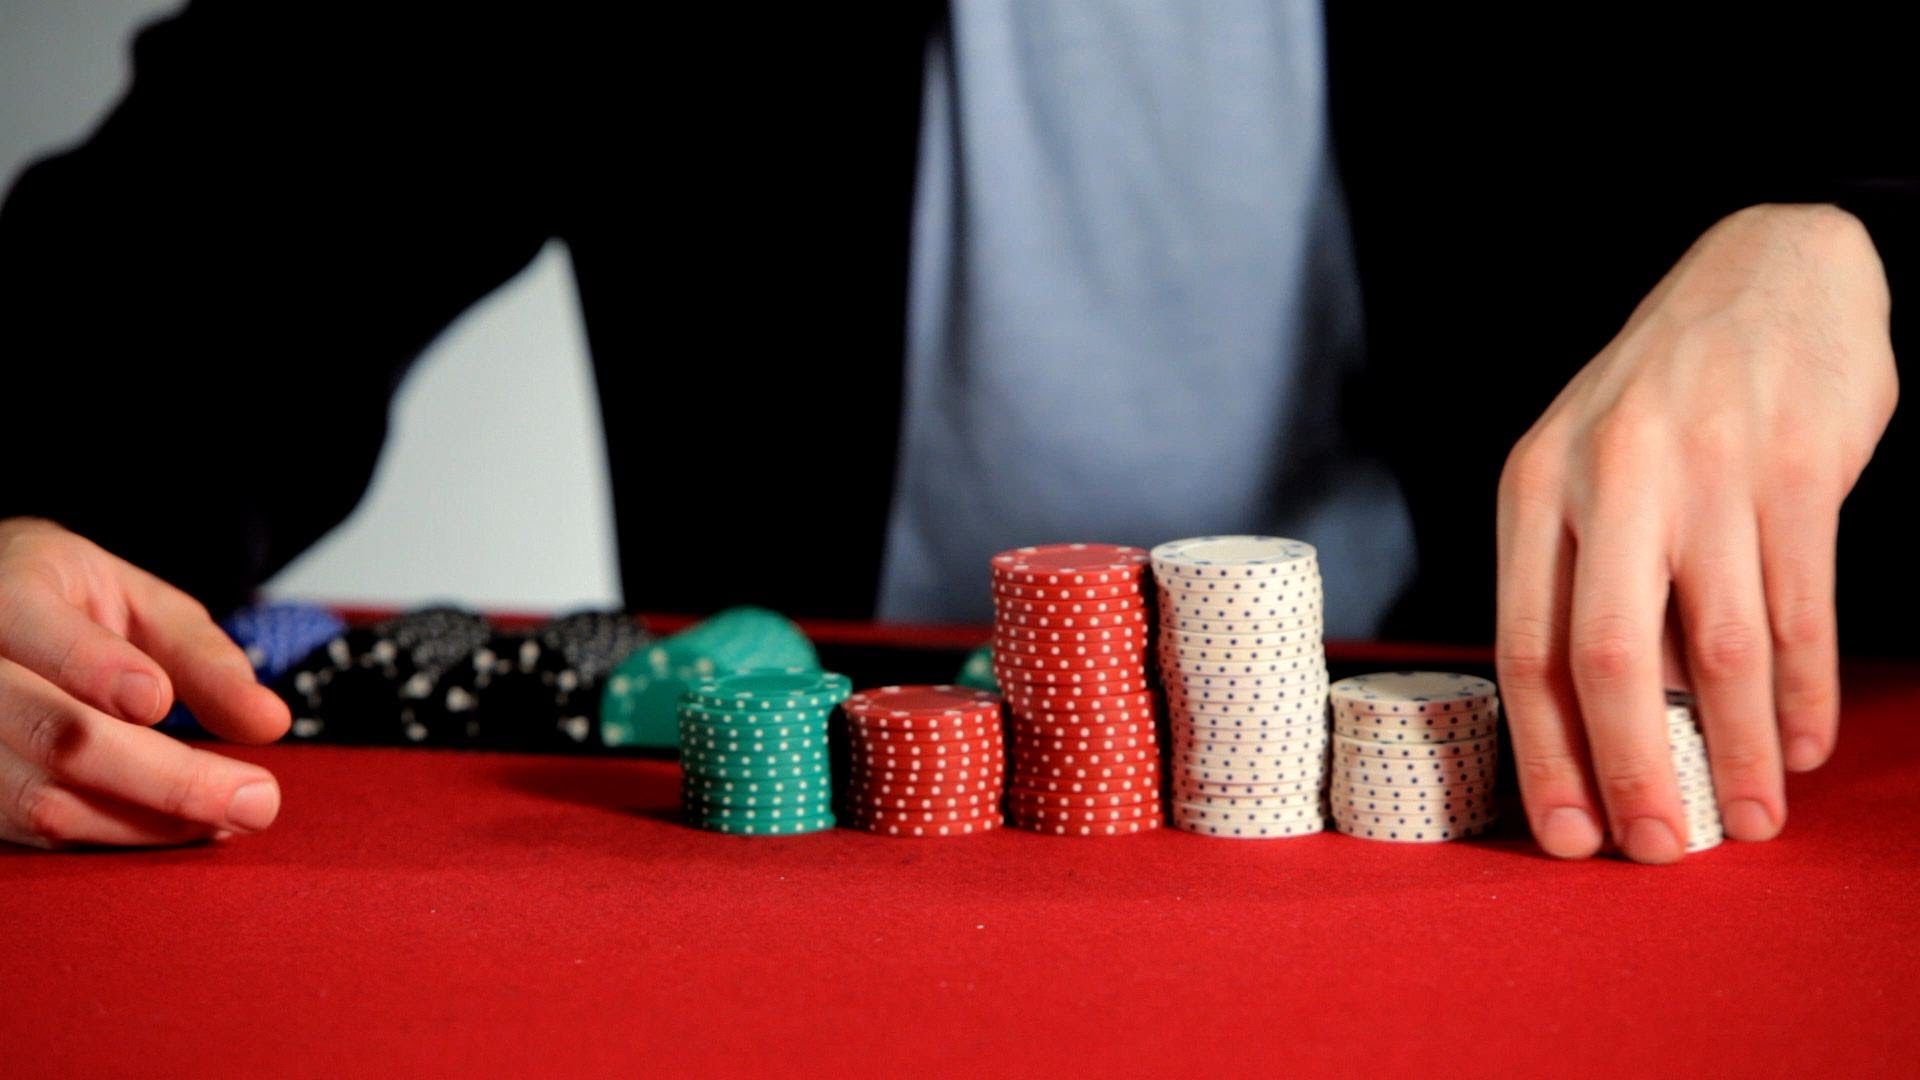 Poker chip stacks photo